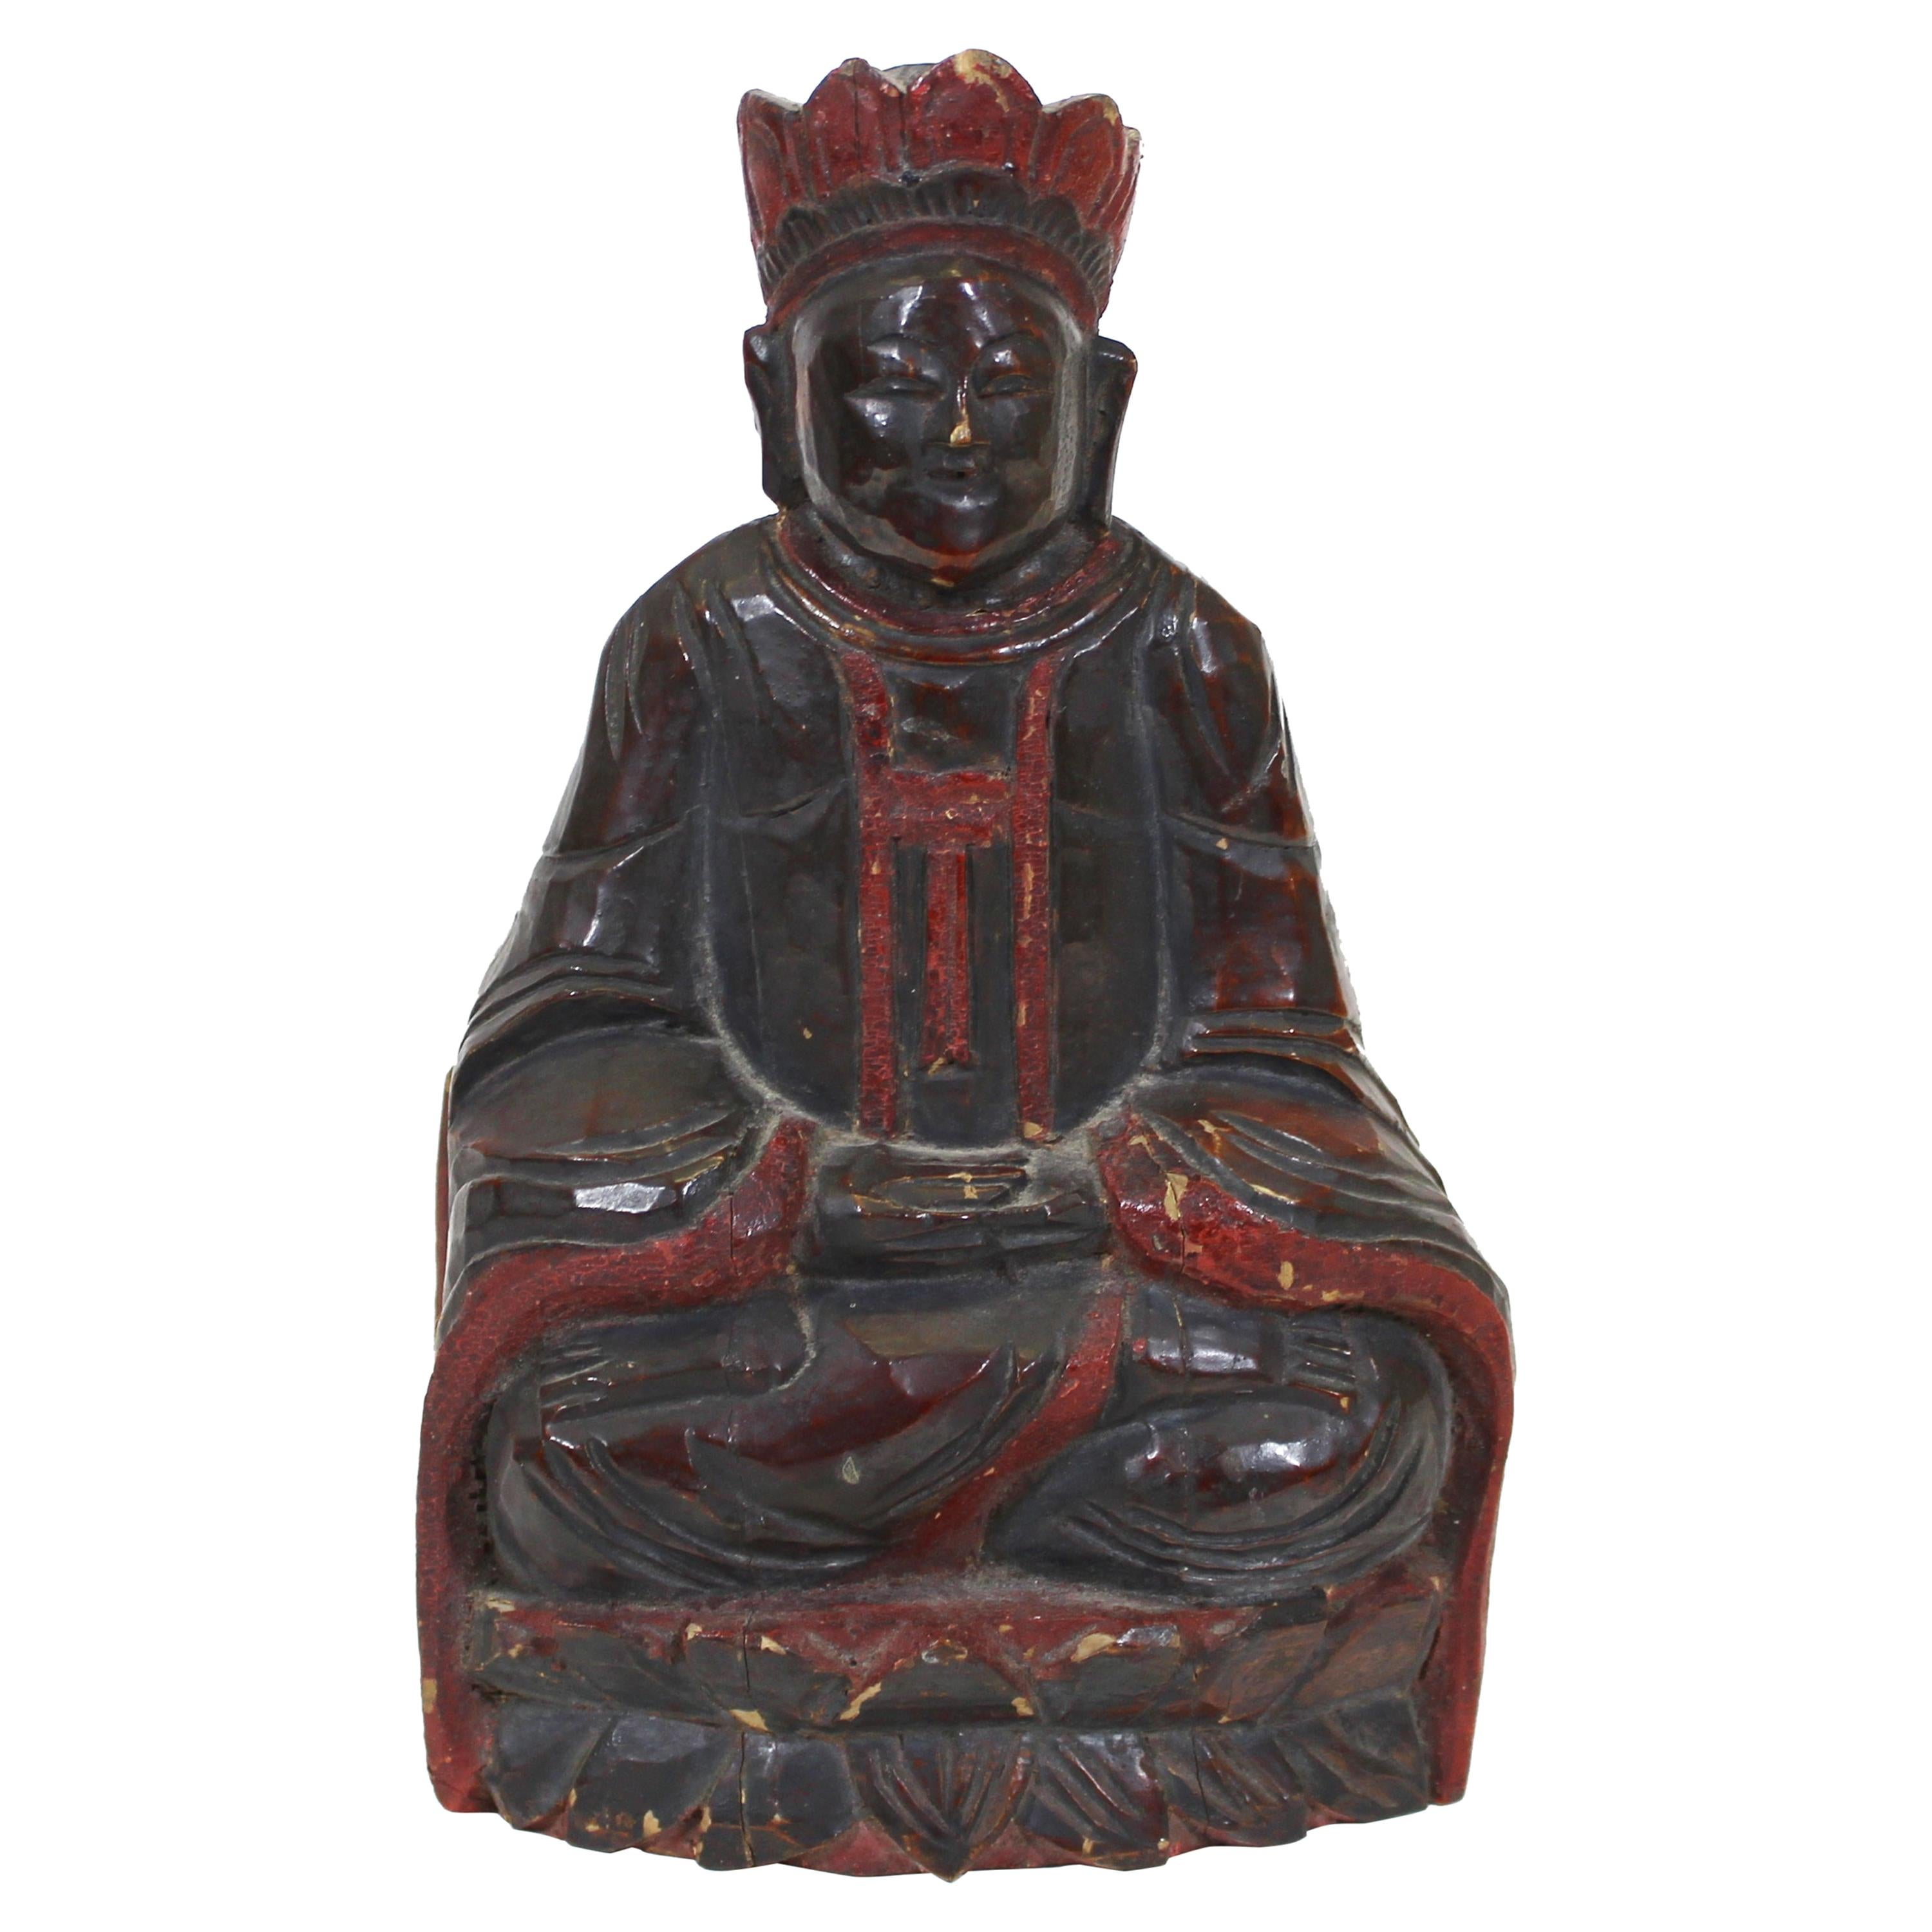 Chinese Carved Wood Reliquary Seated Dignitary Figure